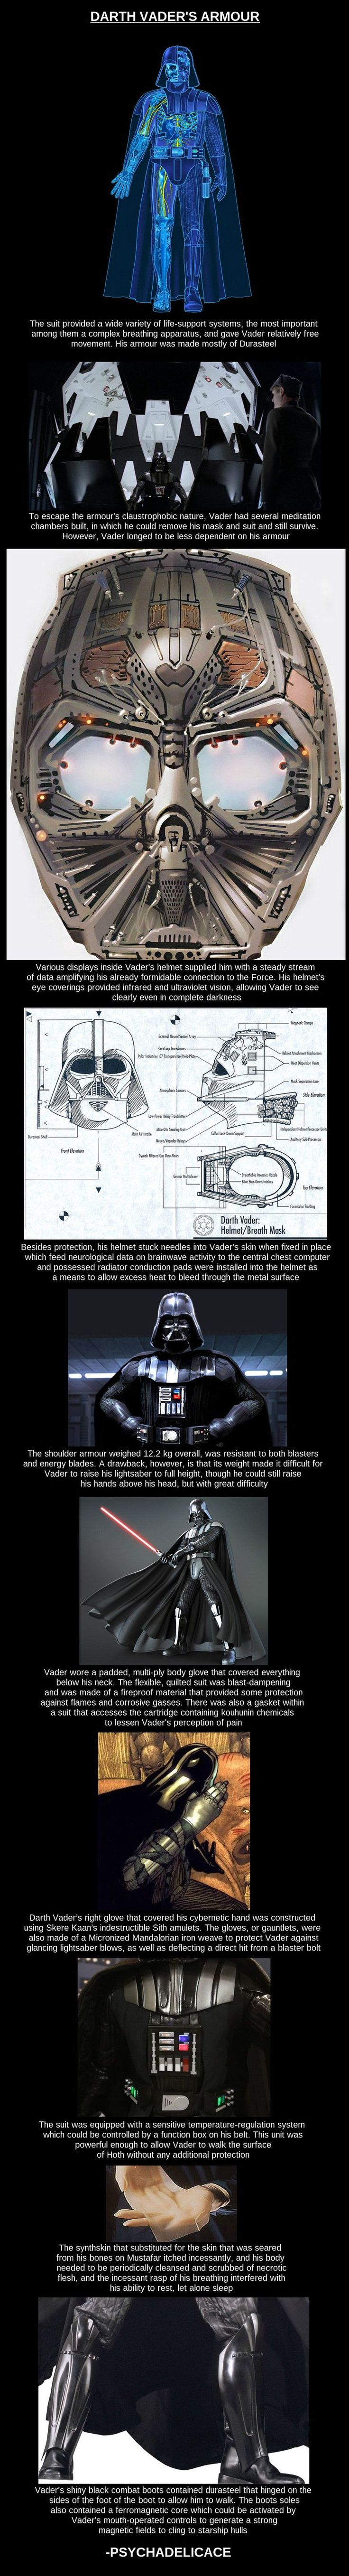 "Darth Vader's Armor.  Fun fact: Vader's boots actually pre-date his helmet - Lucas created a breath mask for his villain as he was originally walking on the outside of Leia's ship to enter it. The whole ""more machine than man"" idea evolved out of that concept. #DarthVader"